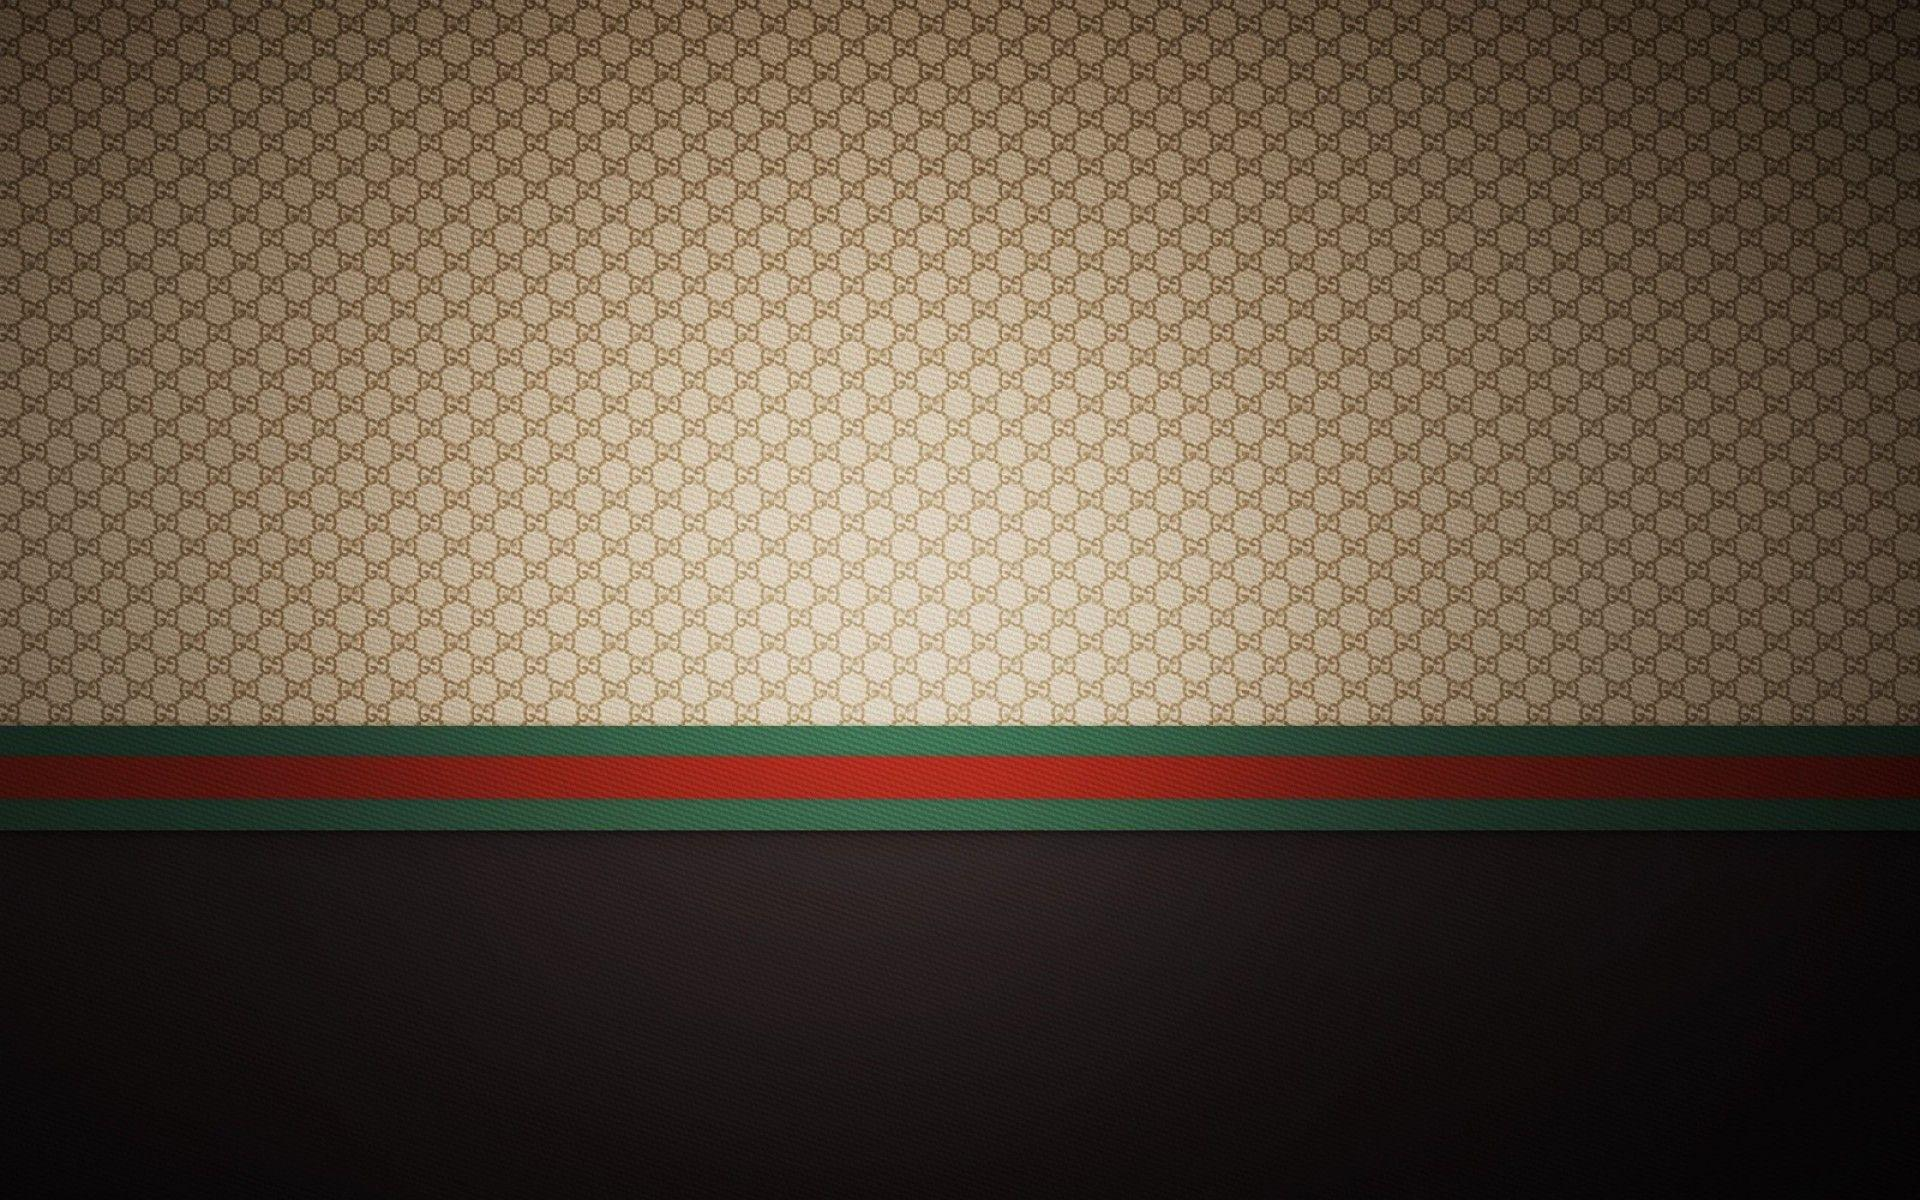 Gucci designer label patterns wall wallpapers HD. | Design ...